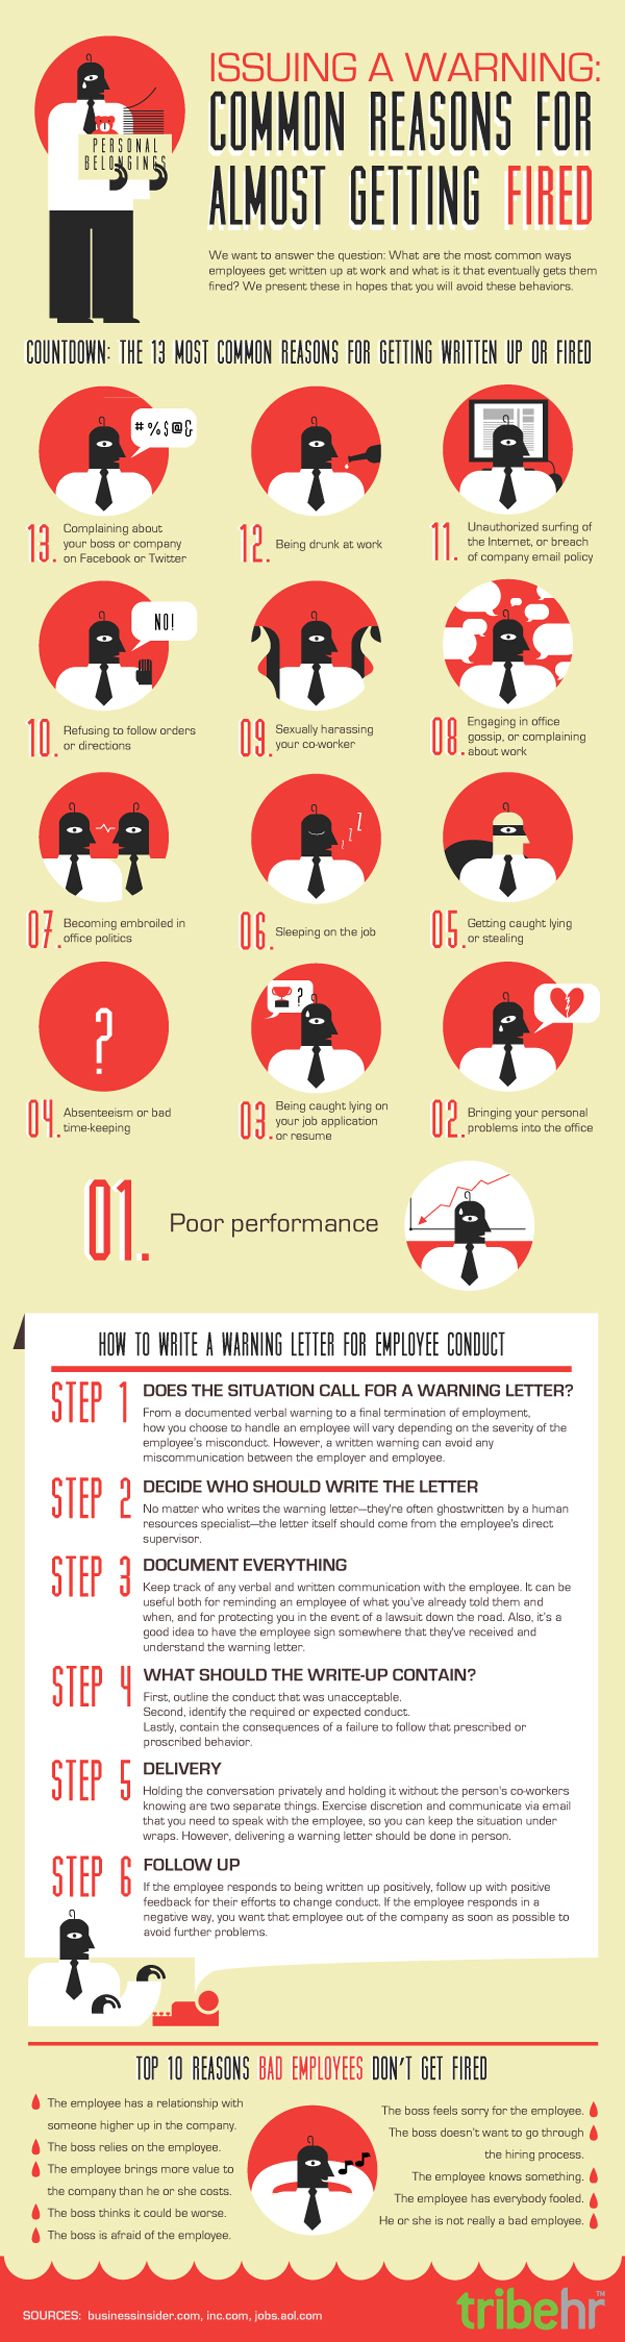 best ideas about getting fired get 13 most common reasons people get fired from jobs infographic